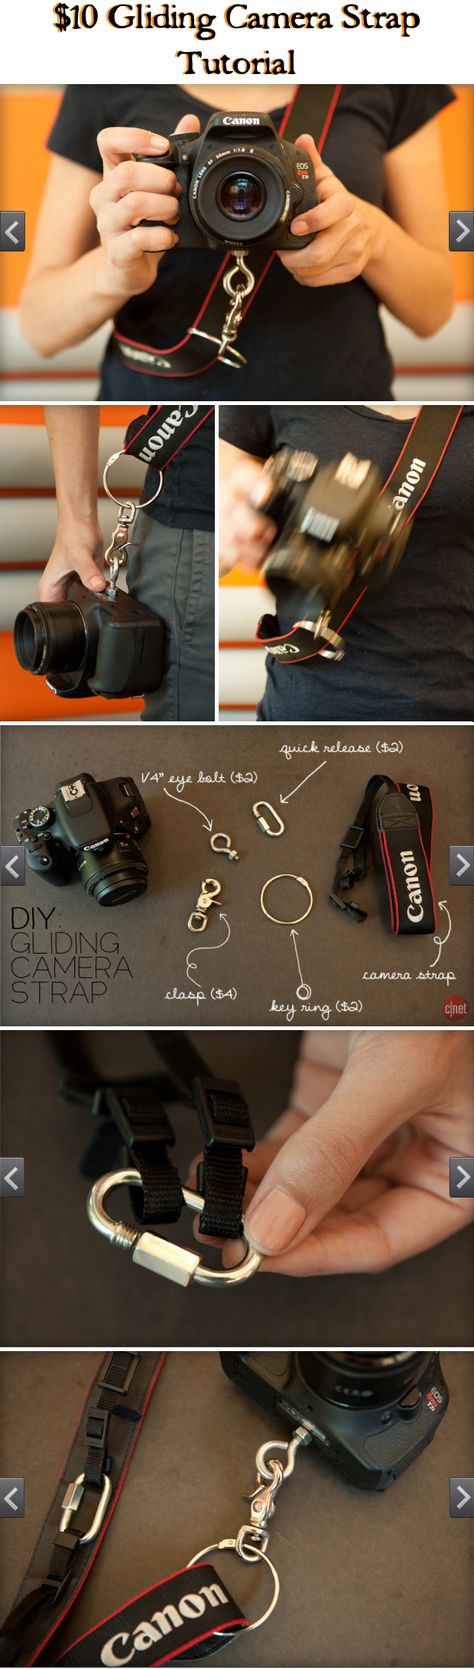 CAMERA ACCESSORIES :: $10 DIY Gliding Camera Strap (VIDEO) Tutorial :: These straps go for 60+ bucks. Learn how to make one for less than 10! Super easy! Now you can wear your camera across your body (not weighing on your neck) & have it at the ready w/ ease!   #cnet